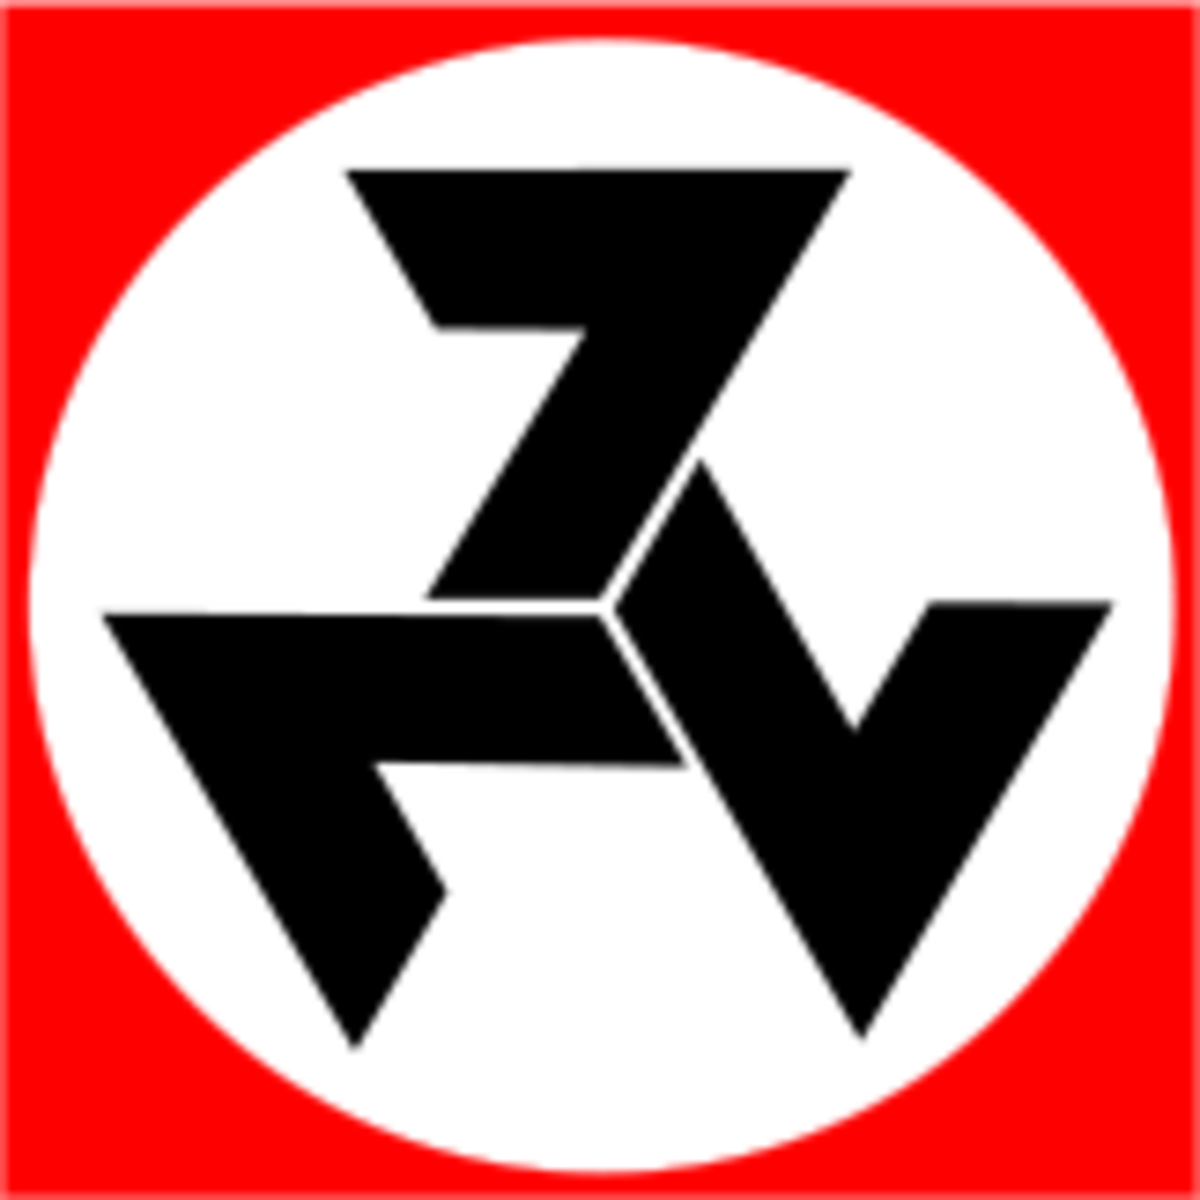 South African AWB Nazi Sign